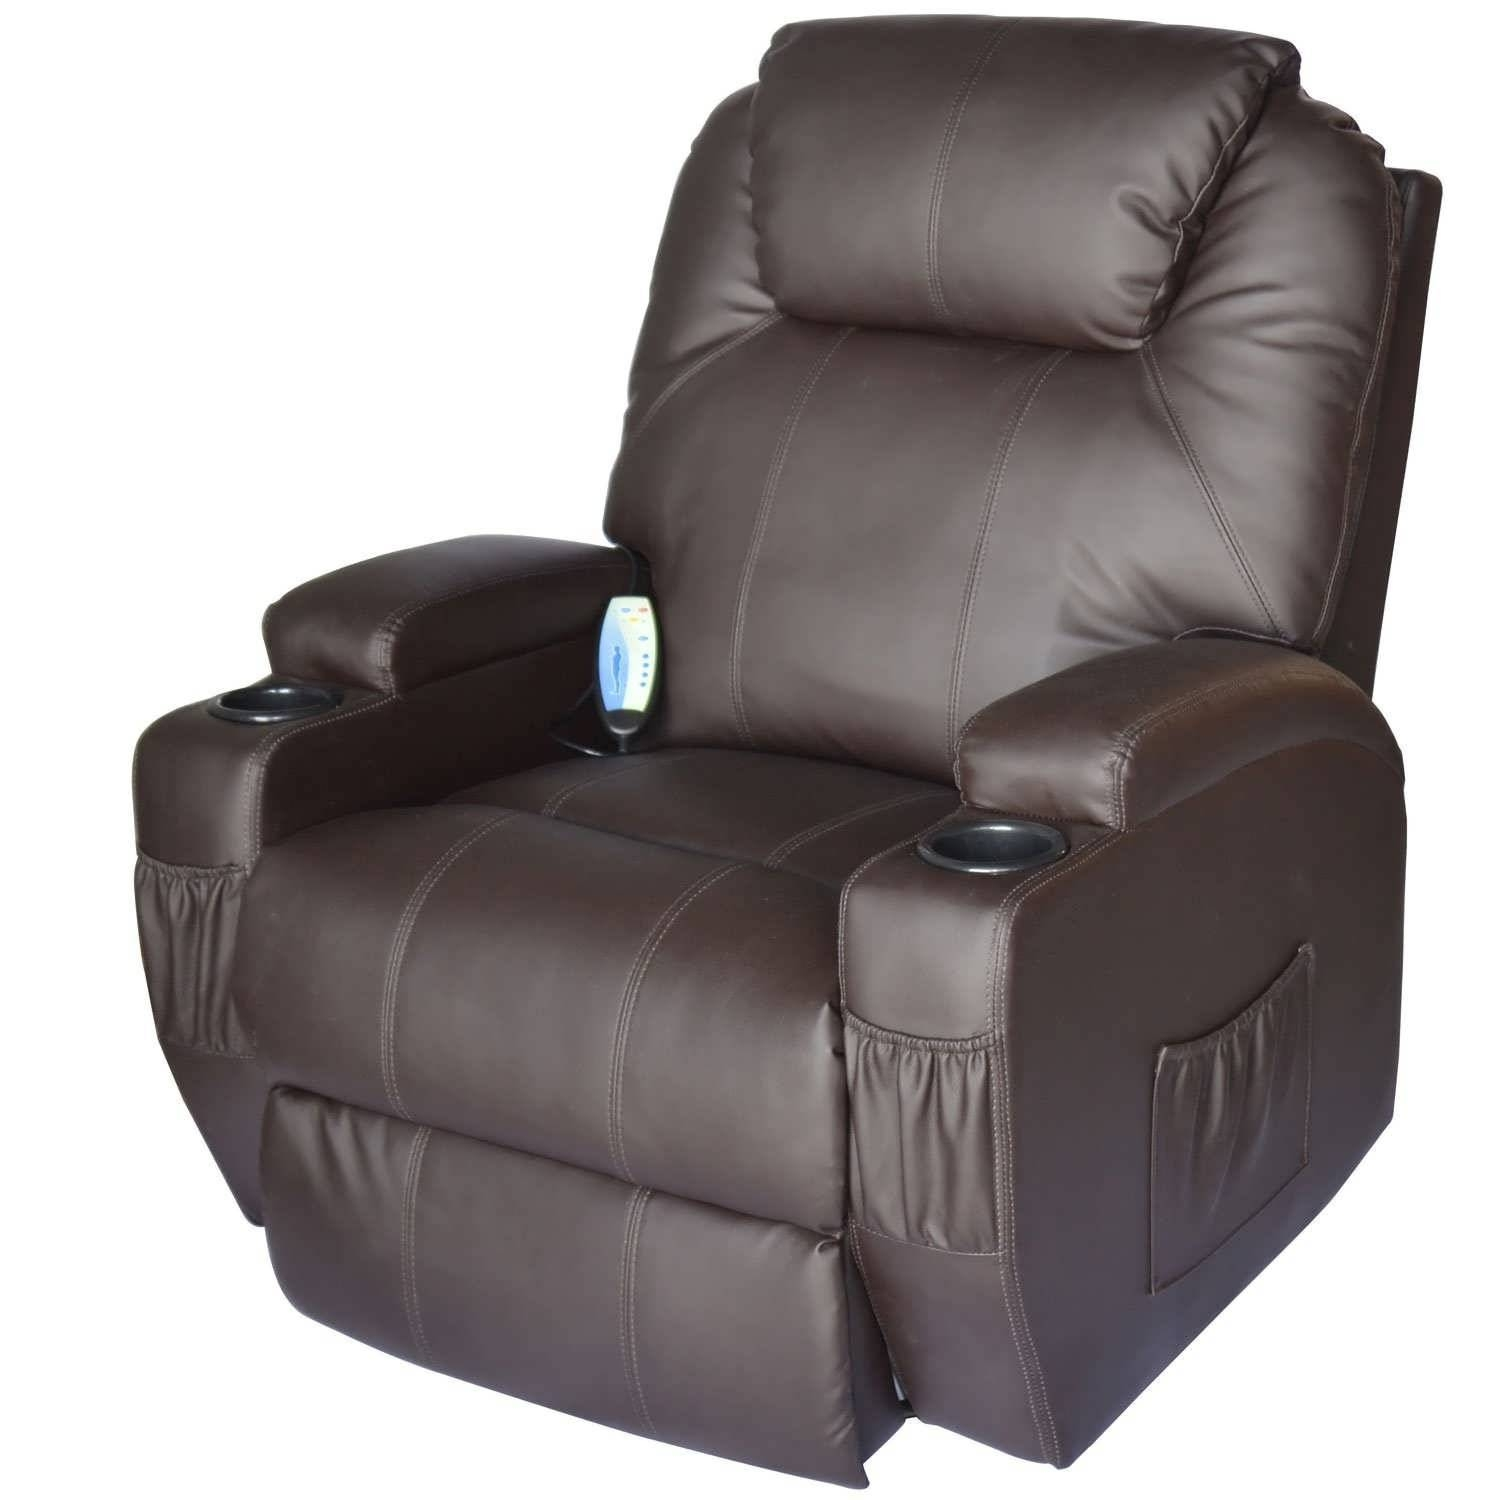 Sofa : Stressless Recliners Loveseat Lift Recliners Sectional with Catnapper Sofas (Image 13 of 15)